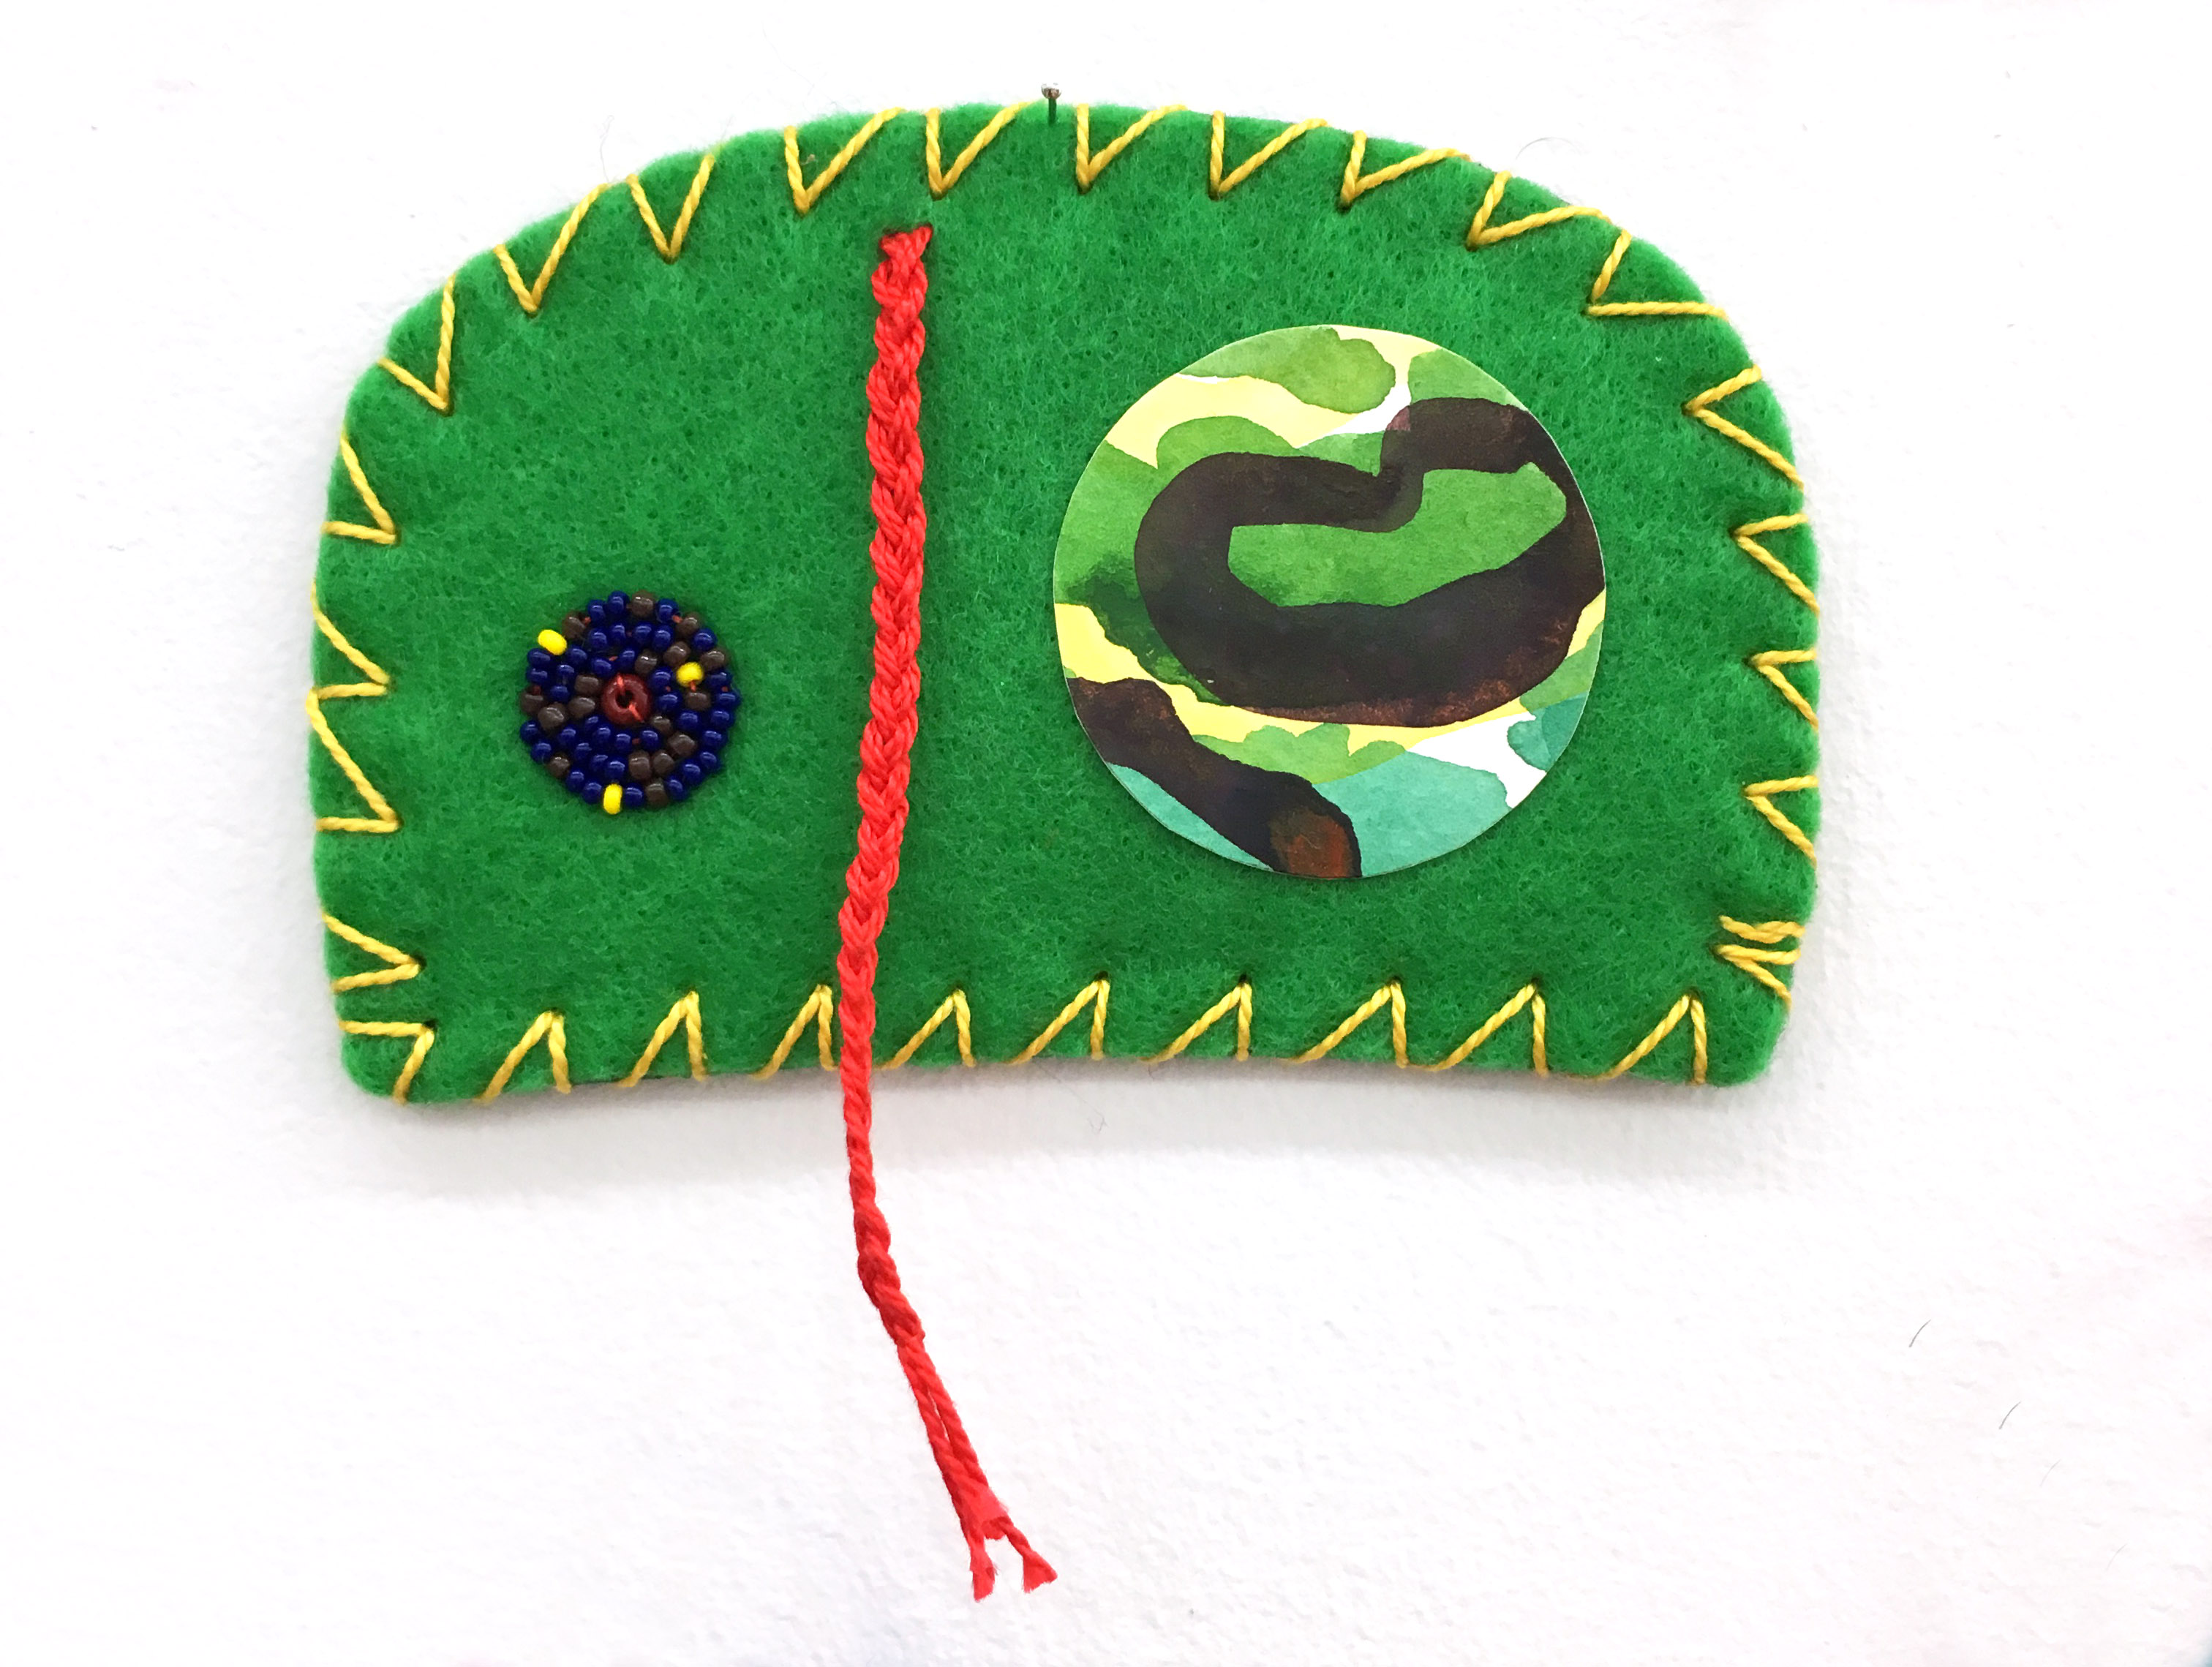 "Ovoid Felts, Charlene Vickers (Anishinabe), Watercolour, paper, shell buttons, glass beads on felt with embroidery edges, 4.5"" x 3"", SOLD"